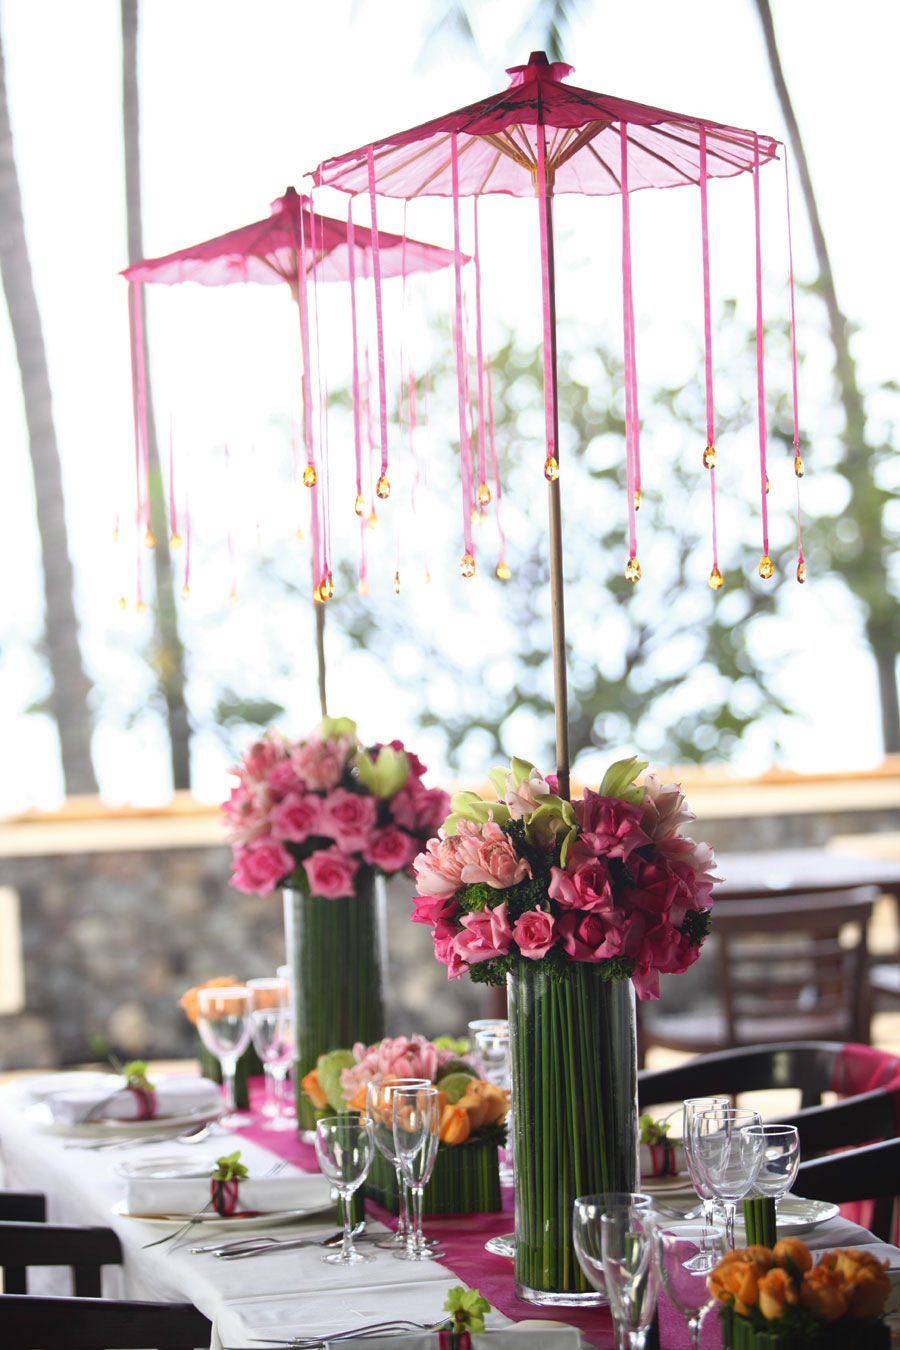 Table-setting-at-Spa-Village-Tembok-Bali-YTL-Hotels